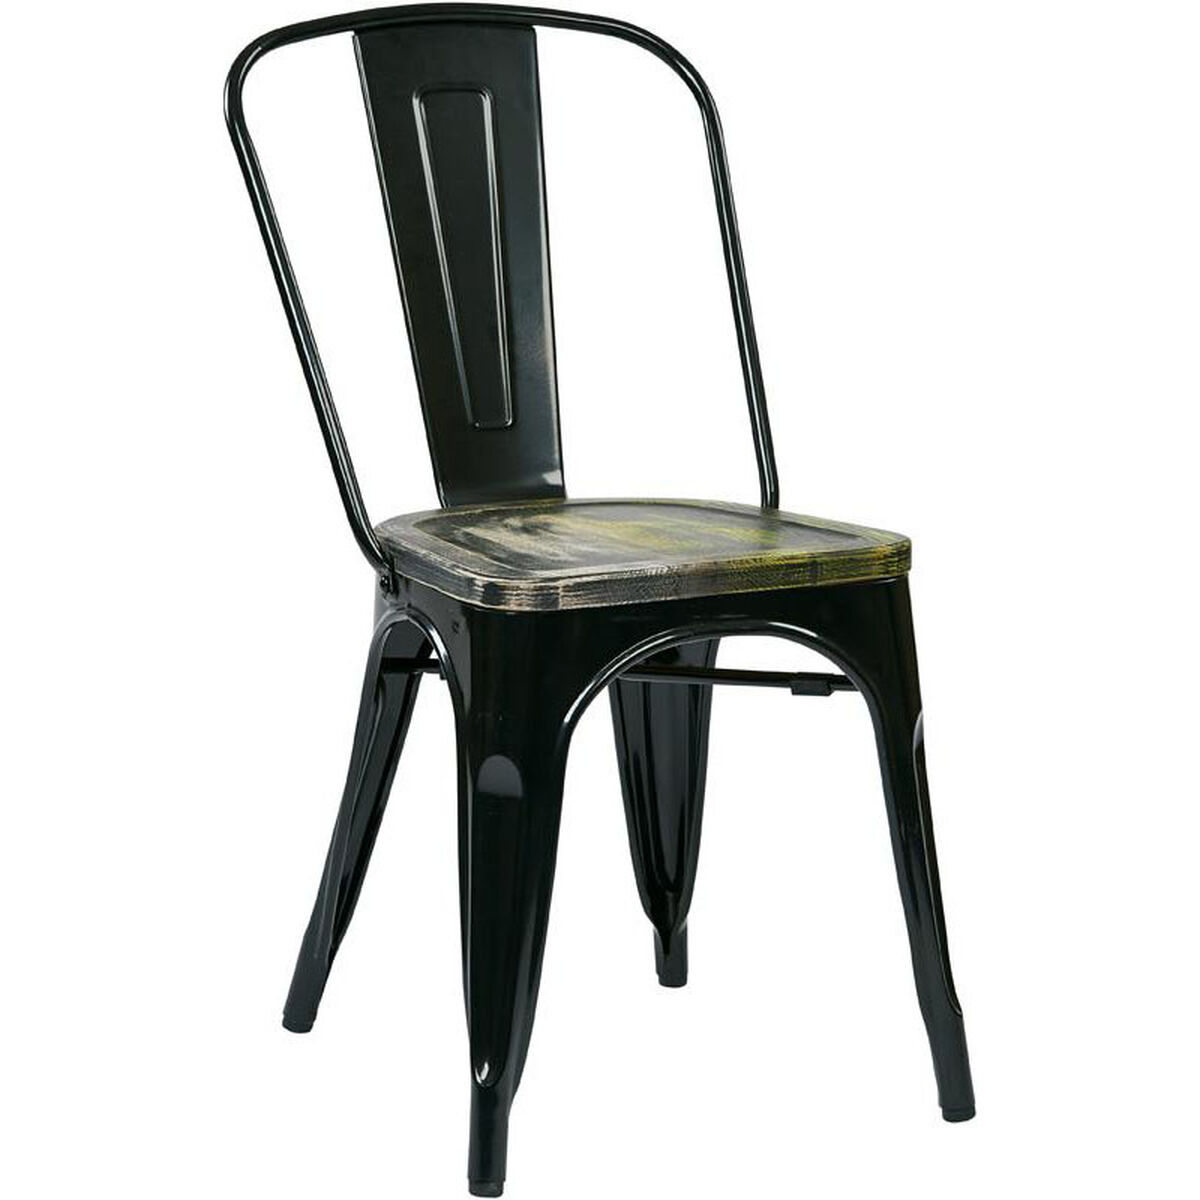 Set Of 4 Black Metal Chair Brw293a4 C301